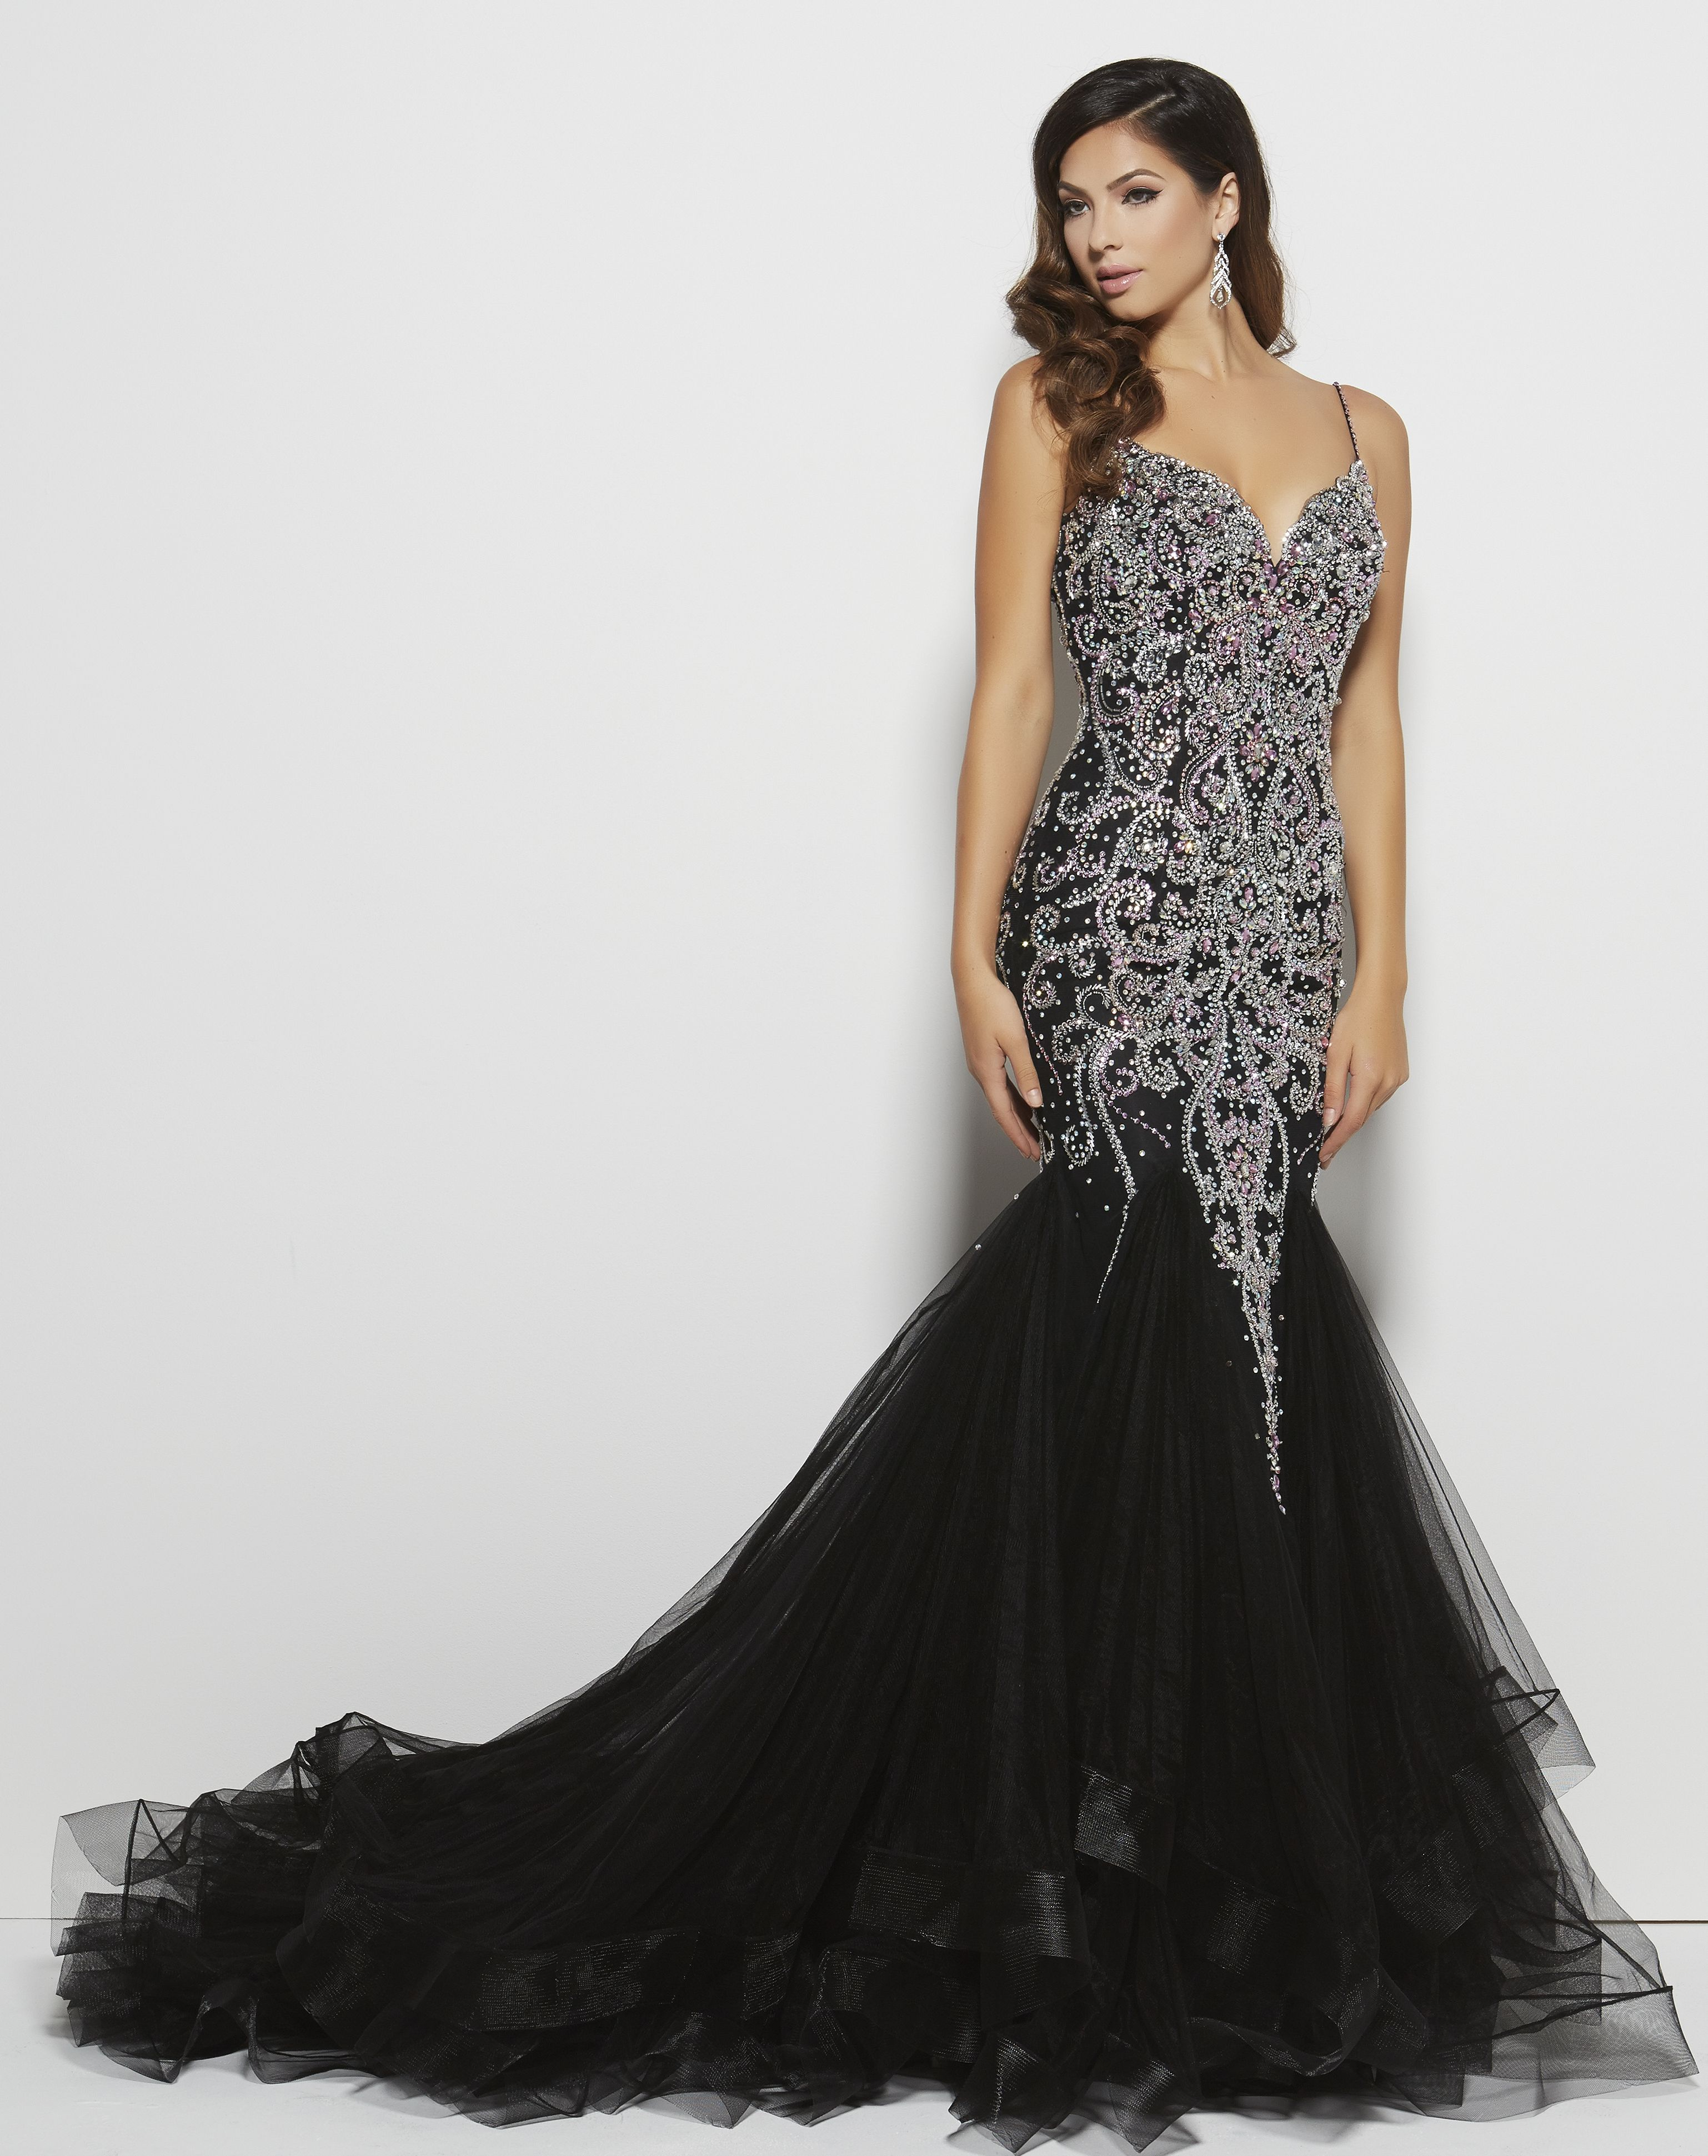 1eb149d7eba This Mac Duggal dress is pure luxury! Imagine walking into prom in this  dress! Head will be turning! Style 82517M Black